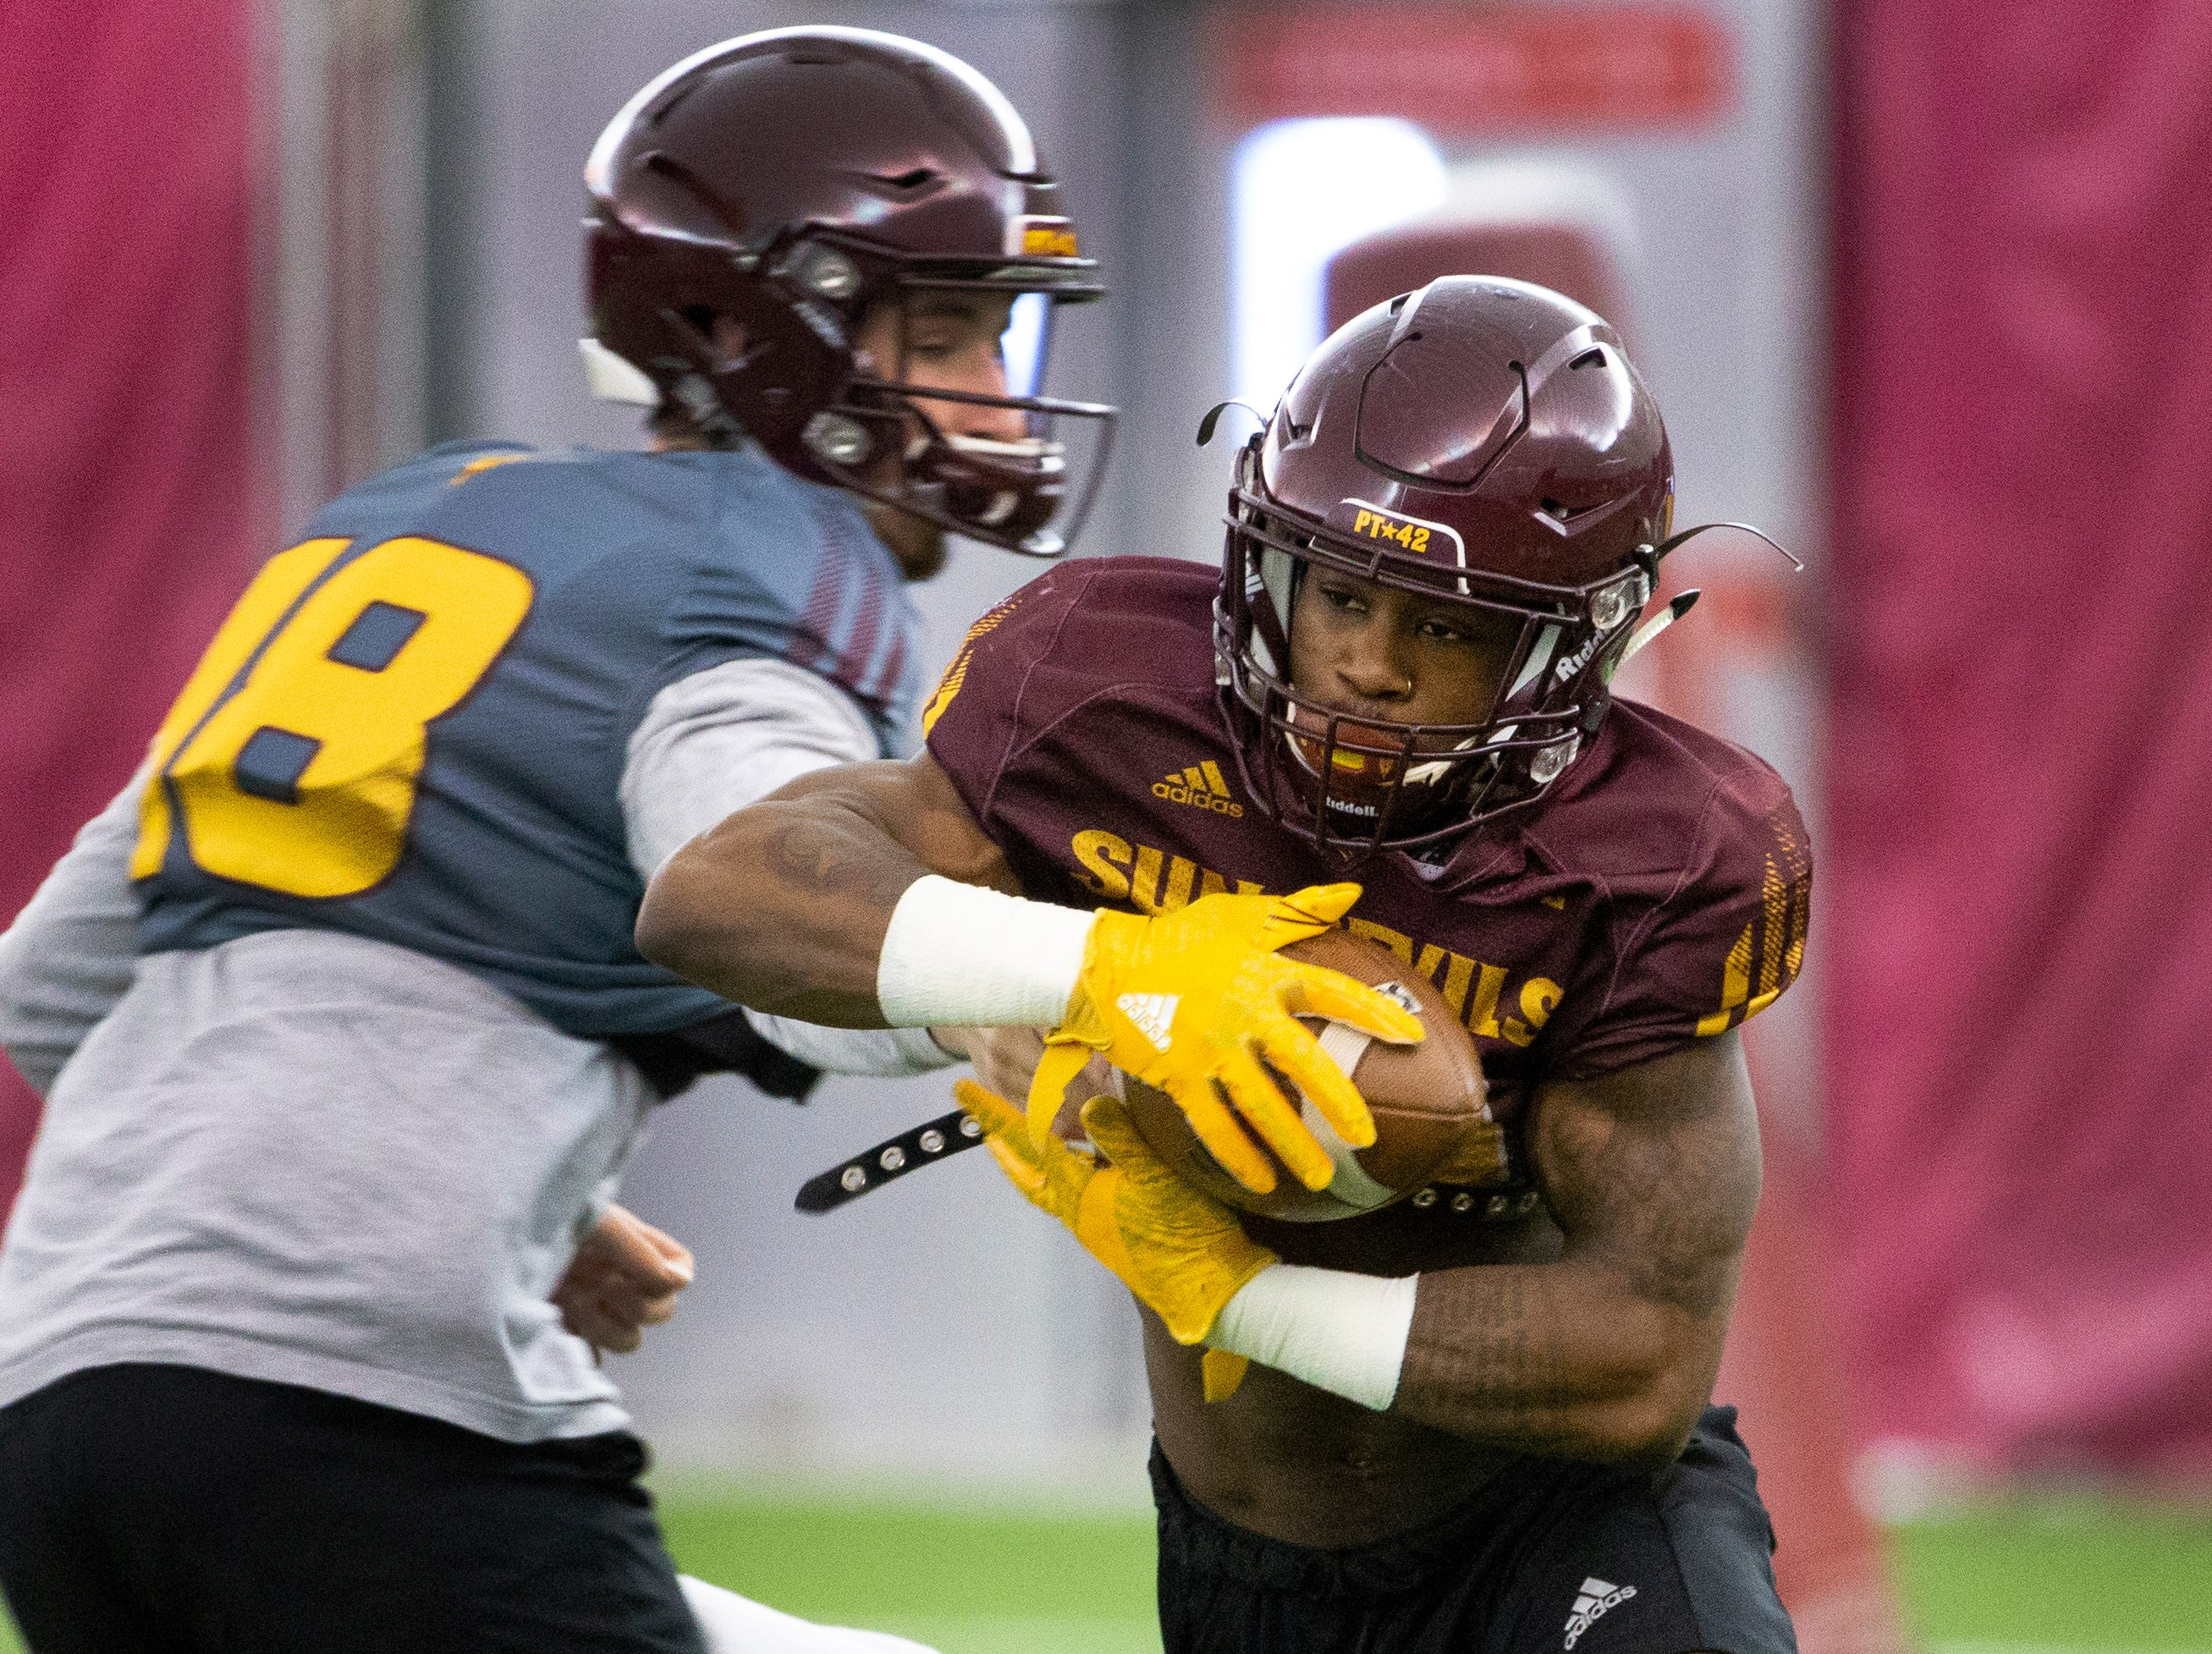 Quarterback Langston Frederick hands off the ball to running back Isaiah Floyd during a drill at ASU spring football practice in the Verde Dickey Dome in Tempe on February 21.